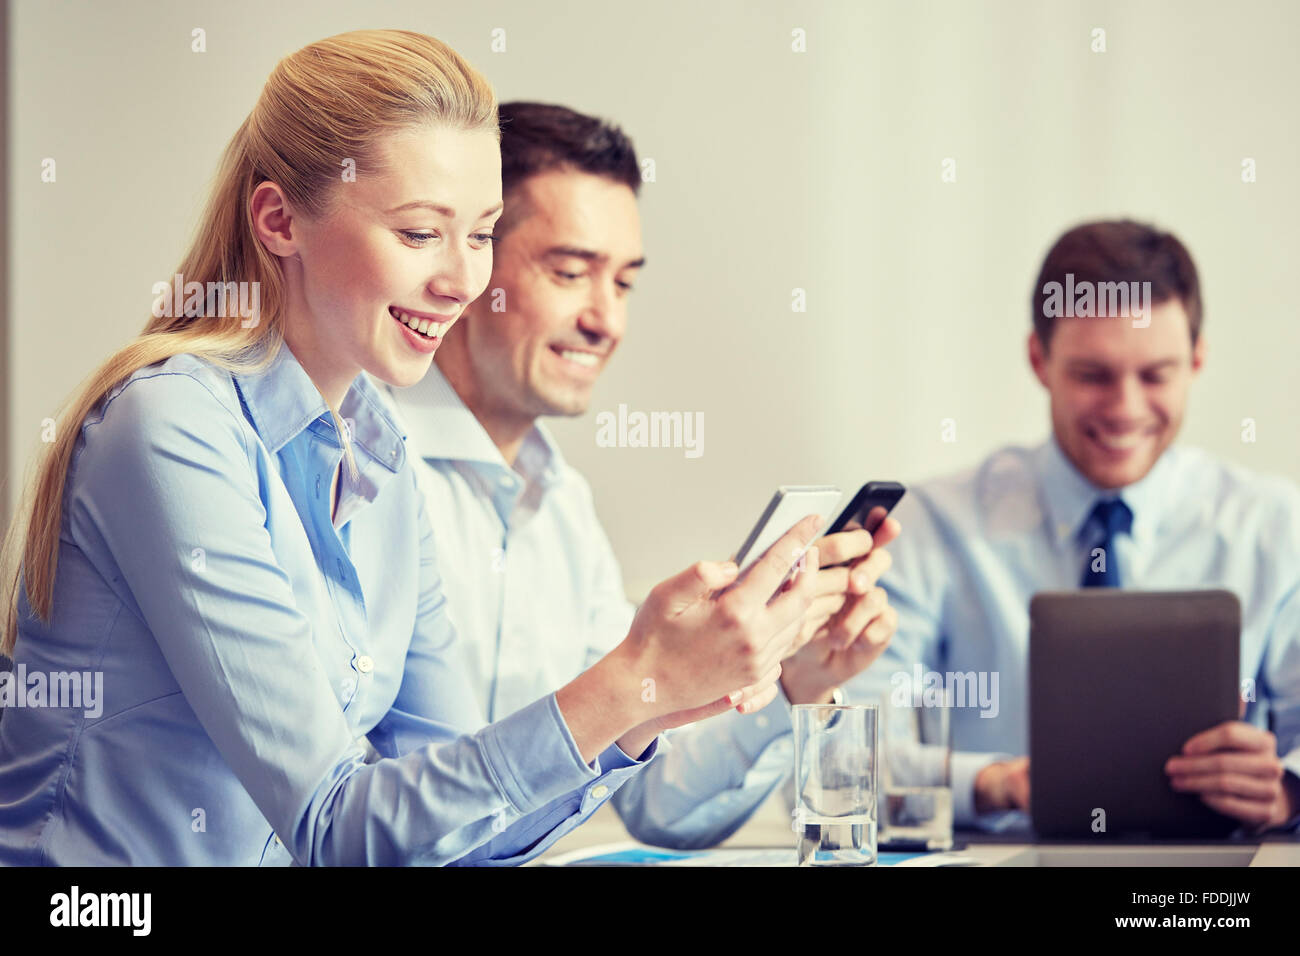 Business People Using Smartphones